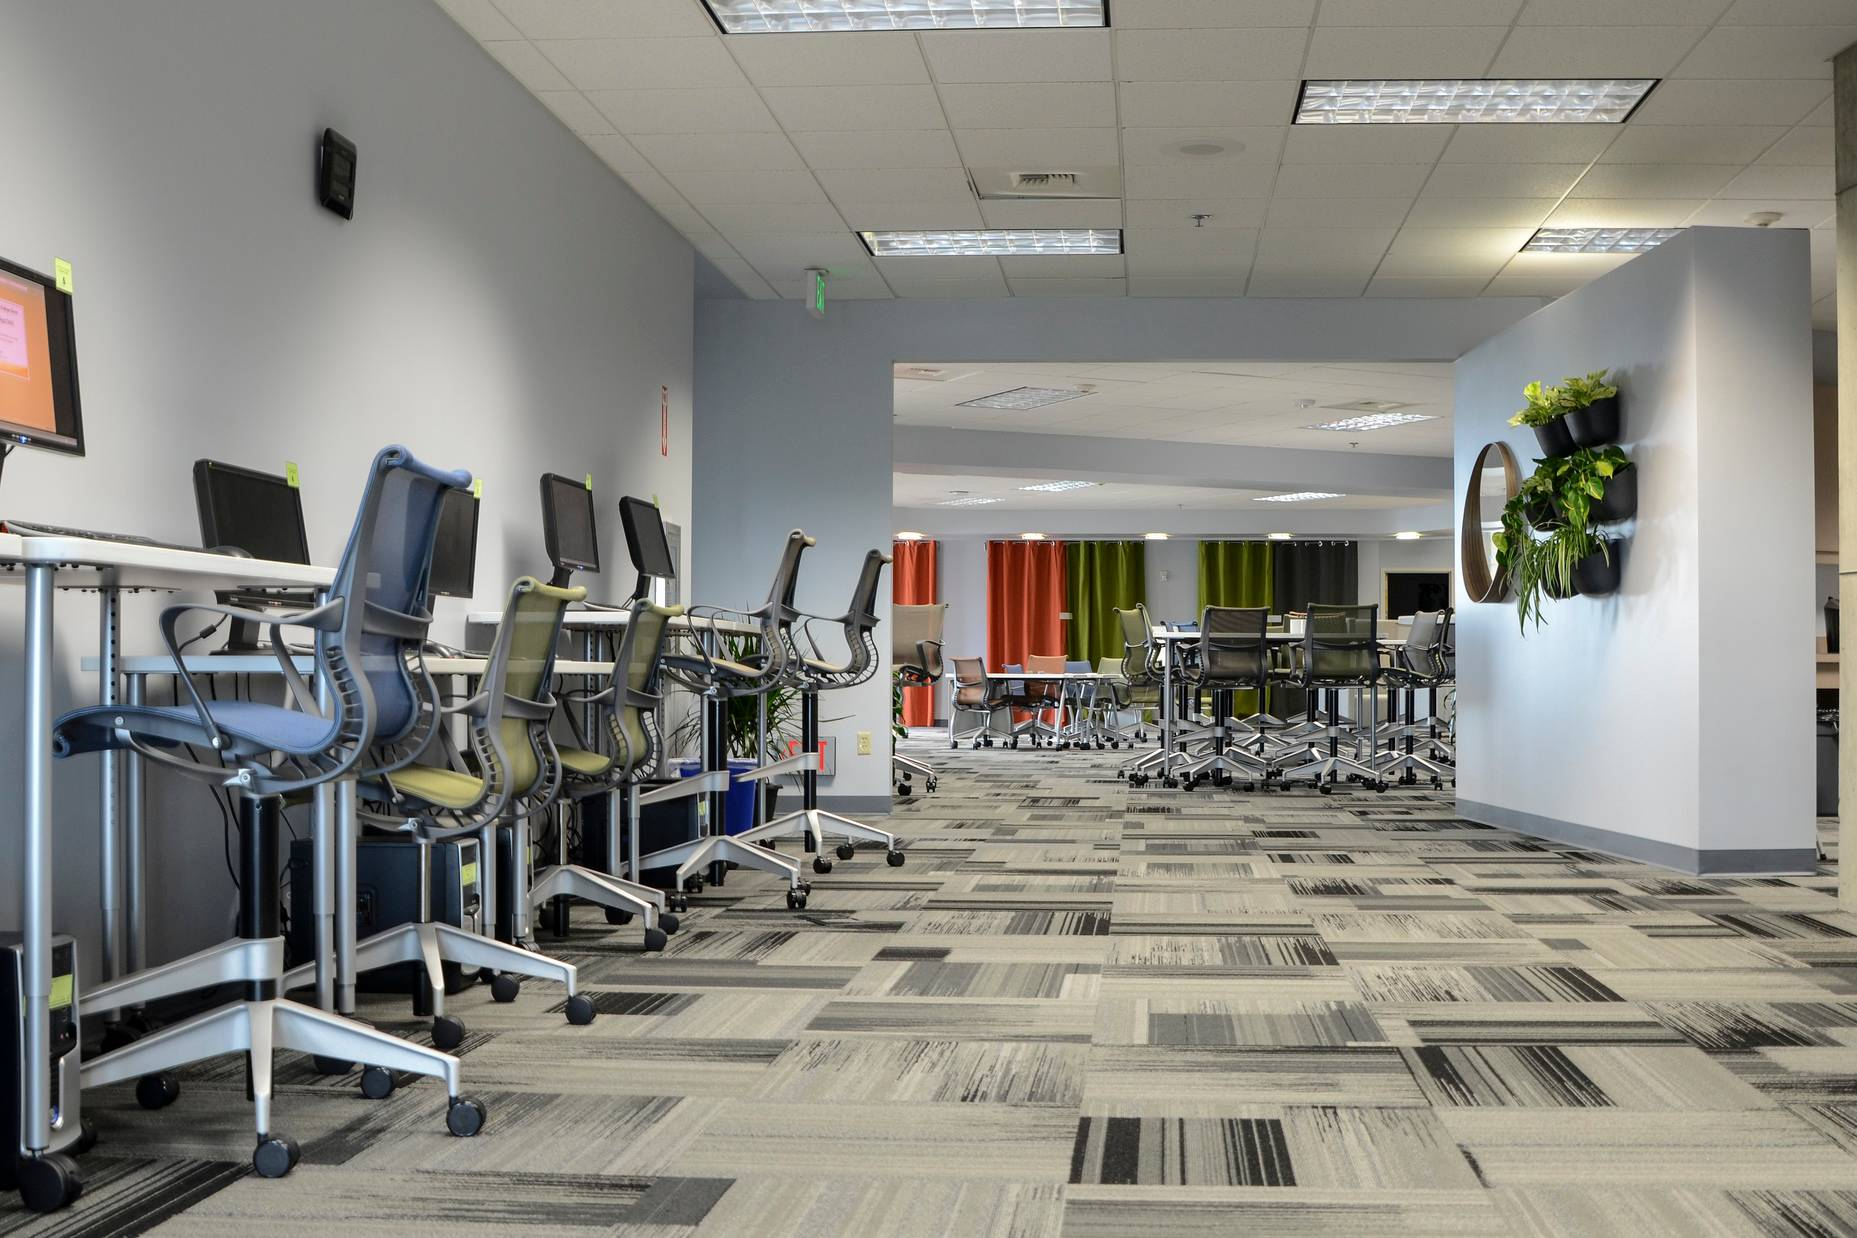 San Diego Mesa College's new LOFT – Learning Opportunities for Transformation – space, located in the Learning Resource Center, opened in April 2016, and now staff and faculty have a dedicated space on campus for professional learning.